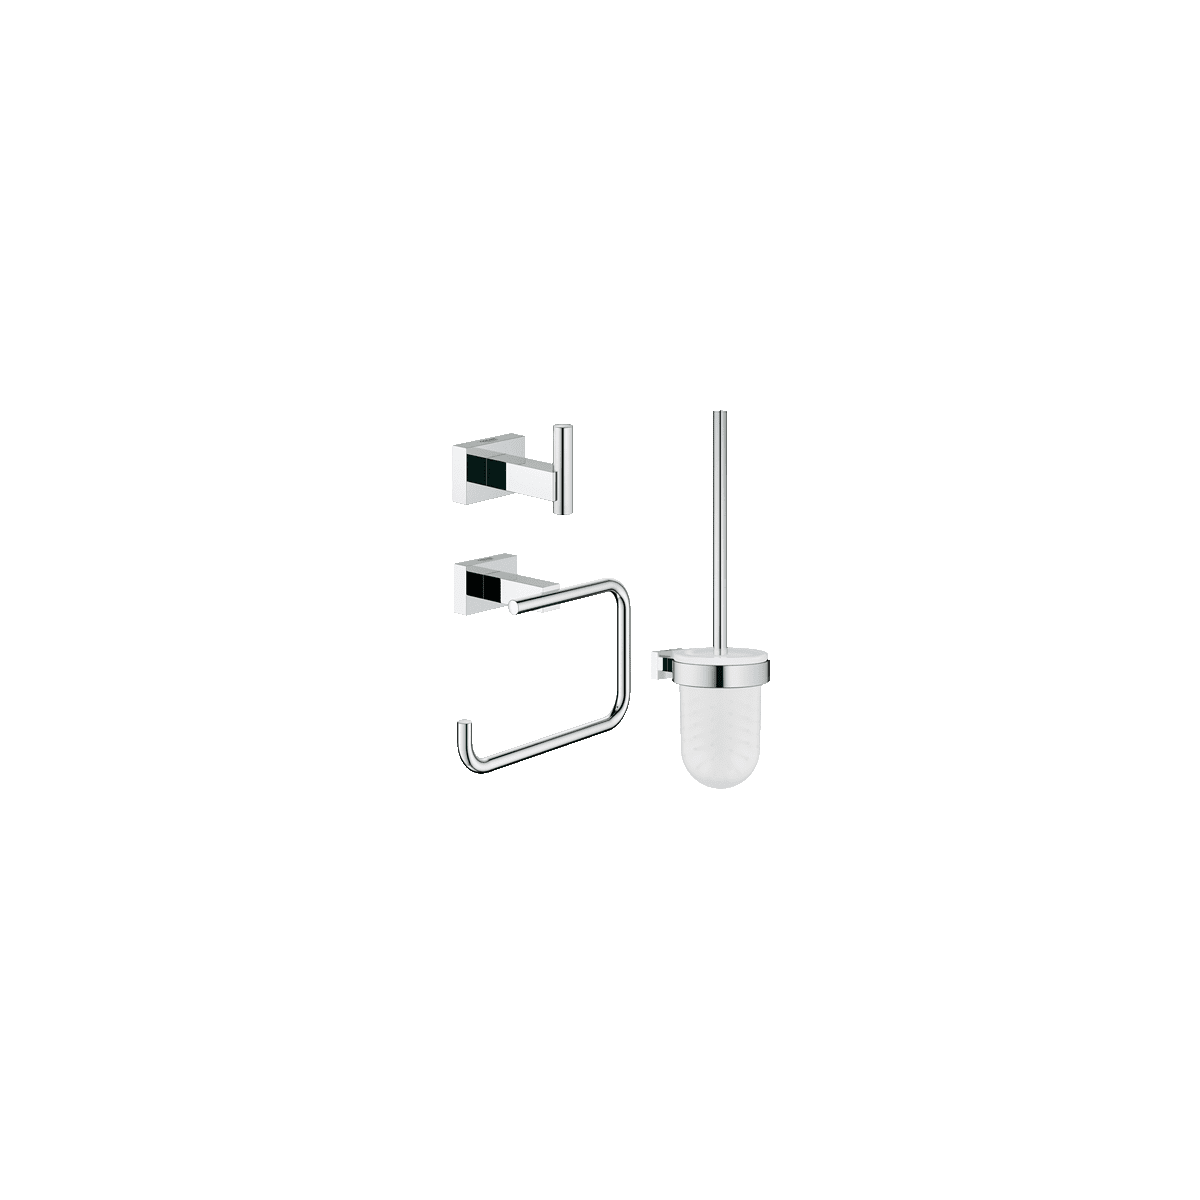 Grohe 40757001 Starlight Chrome Essentials Cube Accessory Kit Includes Toilet Paper Holder Robe Hook And Brush Faucet